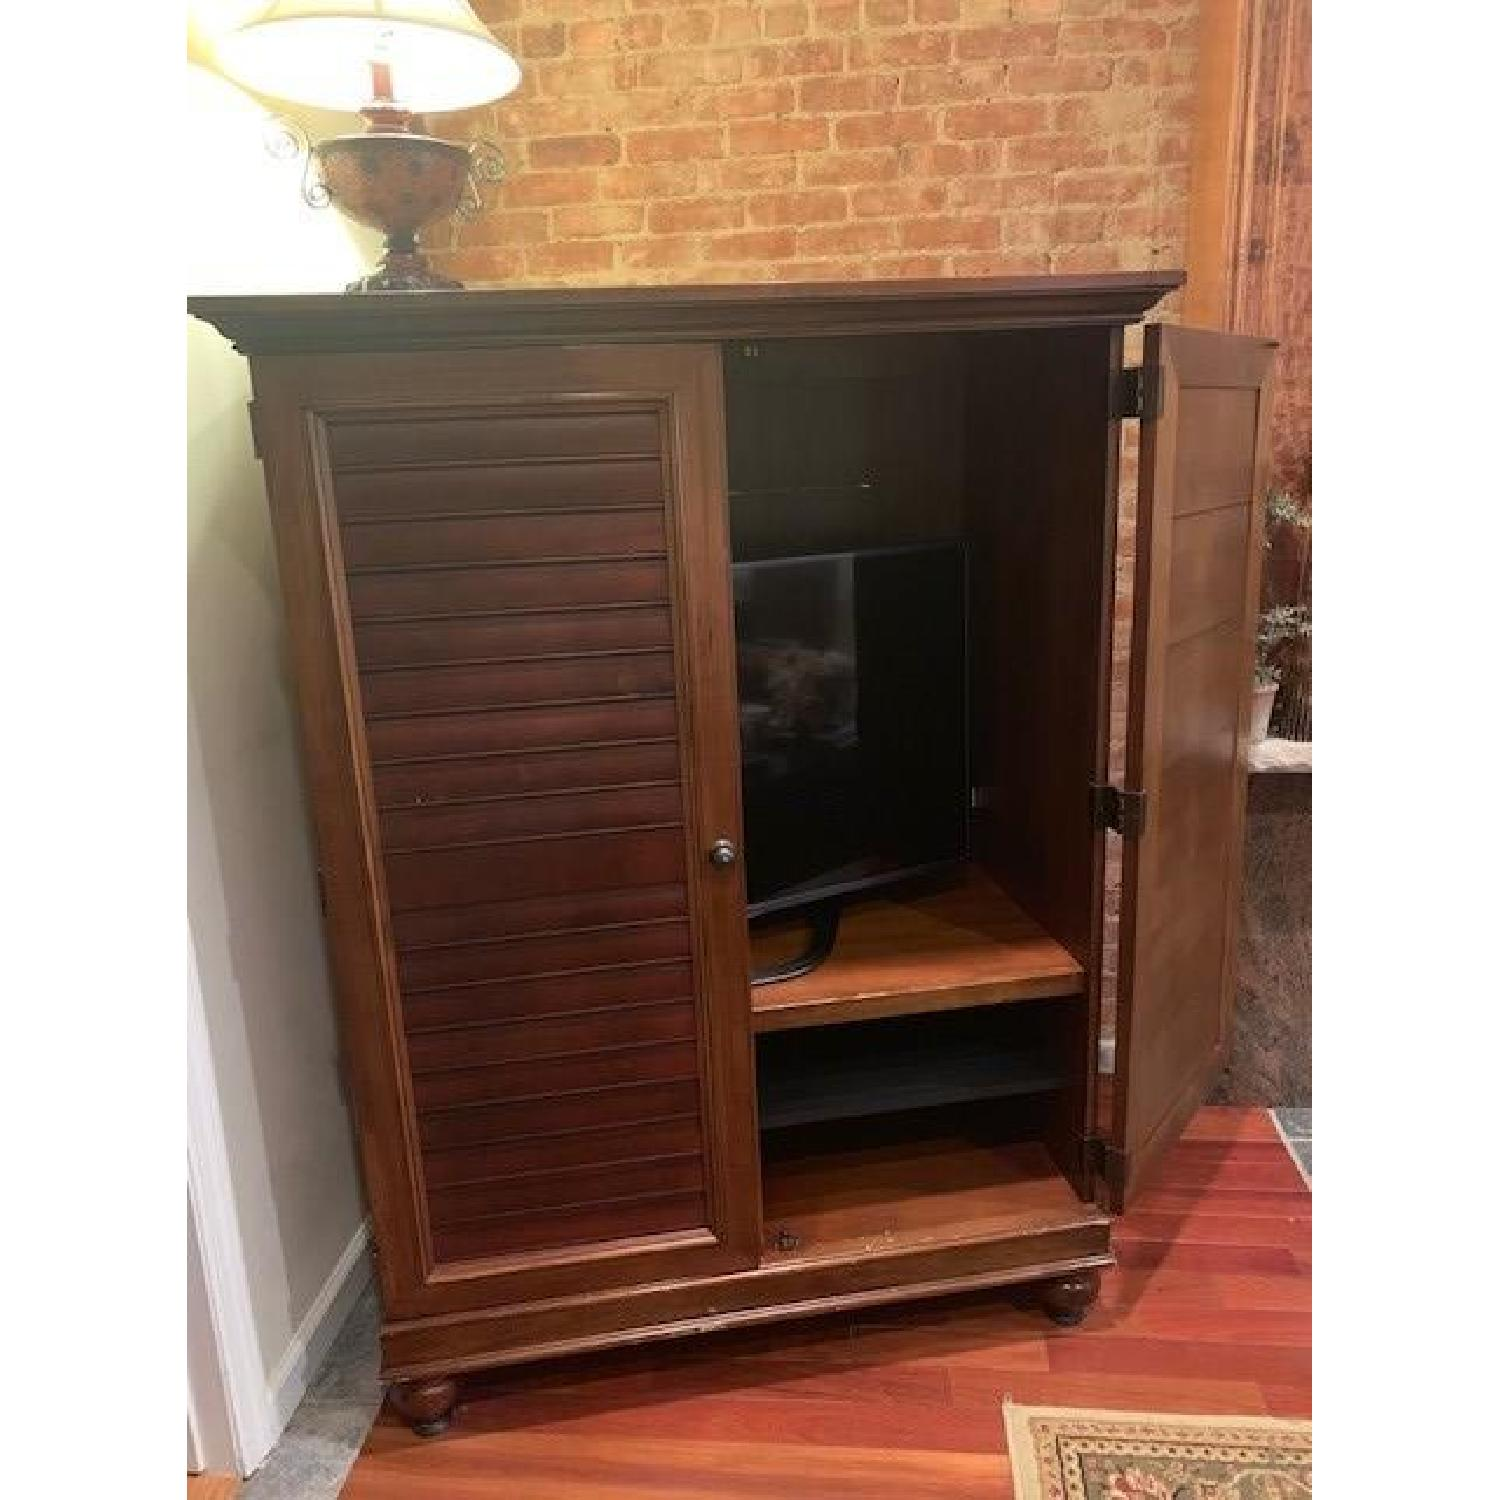 Hooker Furniture Media Cabinet/Armoire in Mahogany Finish - image-8